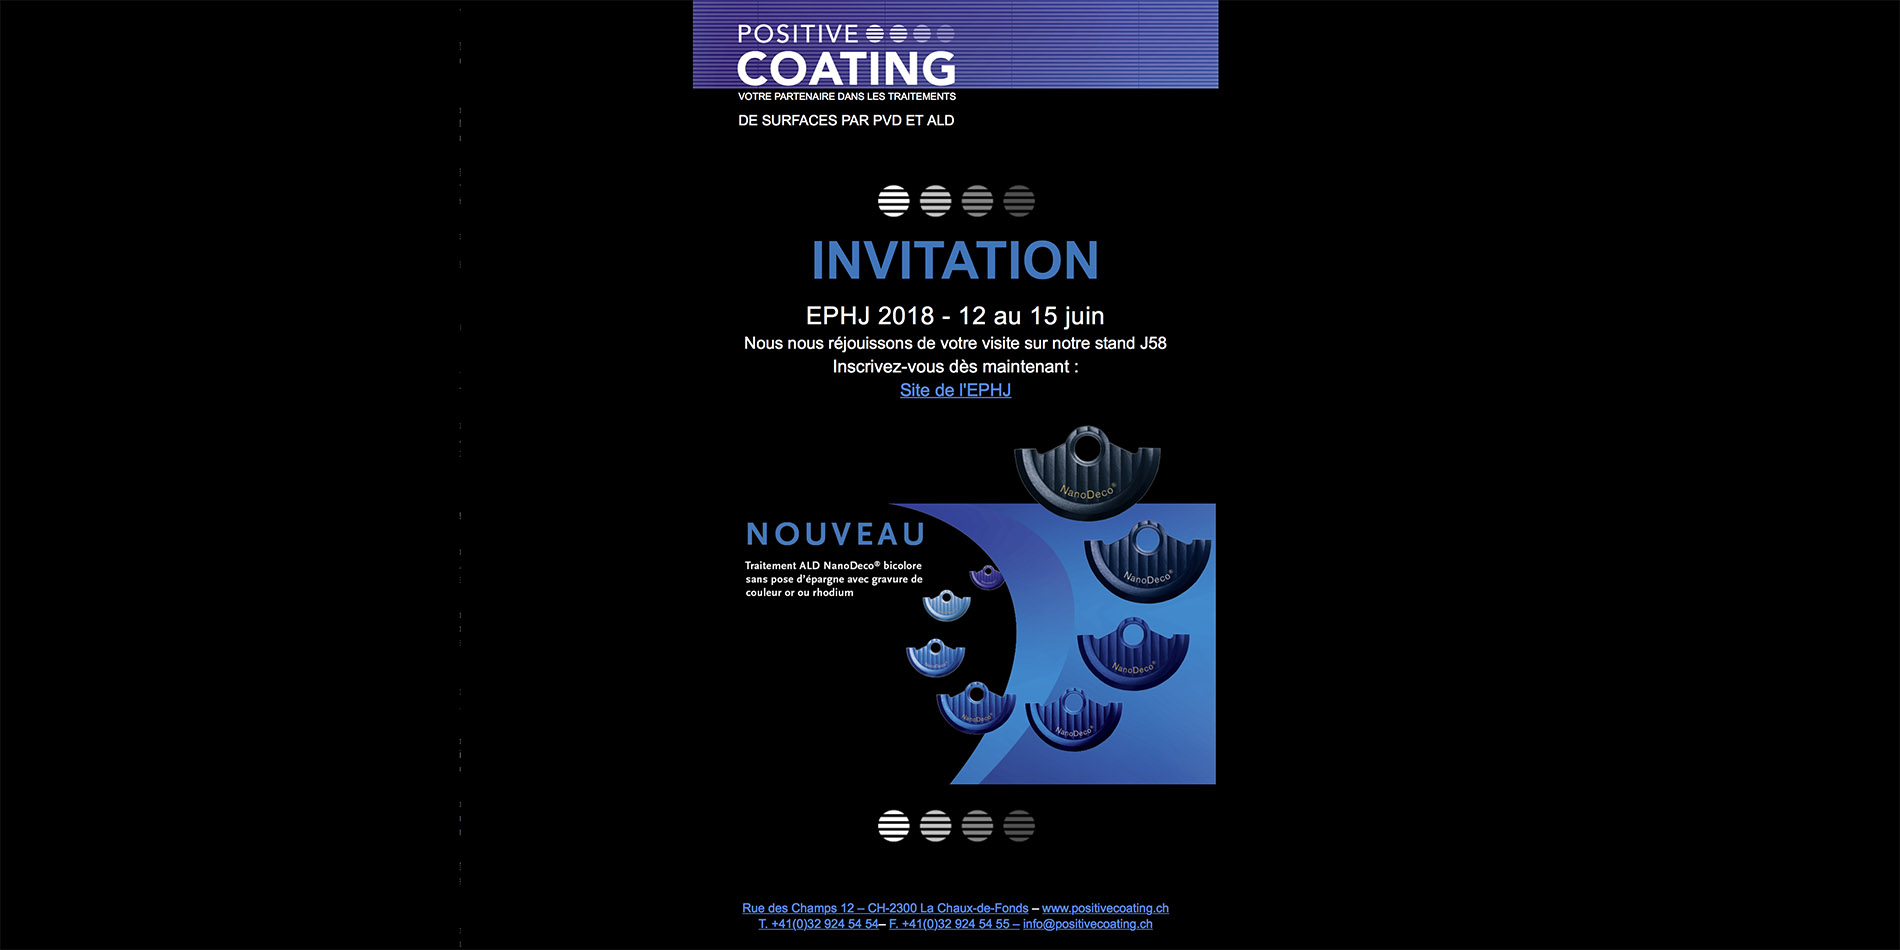 Positive Coating - Newsletter - B12communication, communication et graphisme